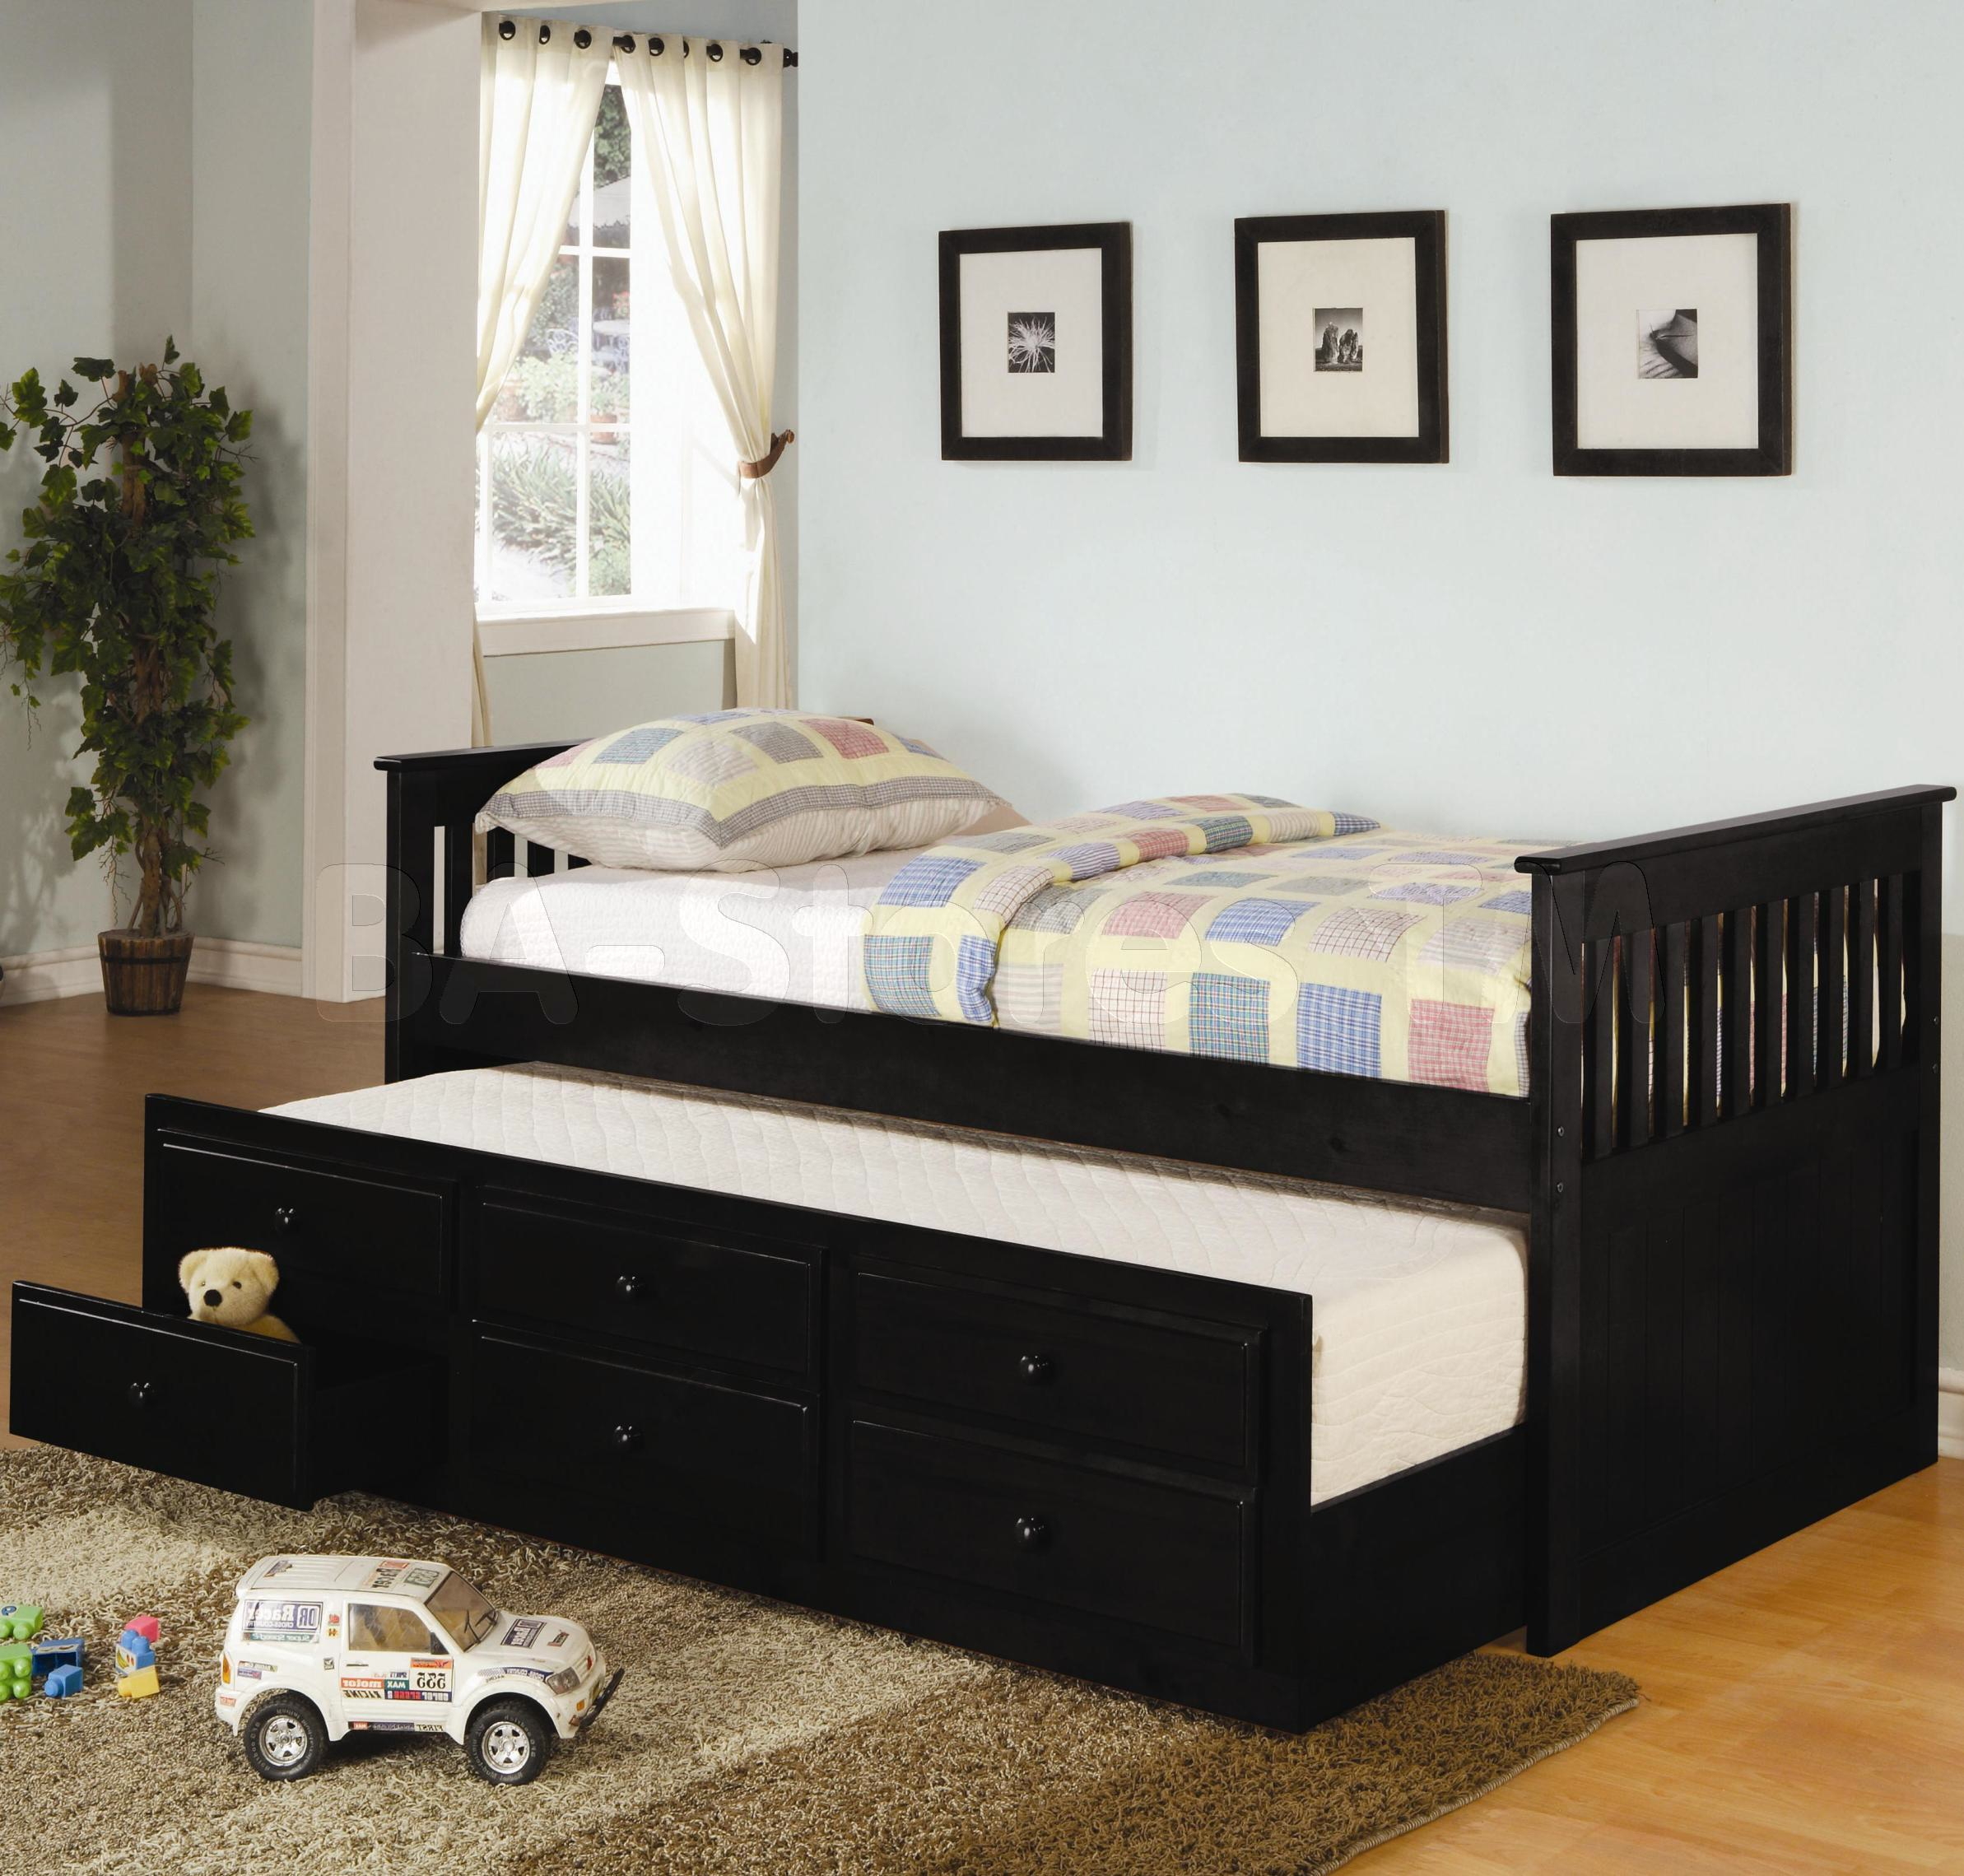 Cheap Daybeds | Daybed with Pop Up Trundle | Rollaway Bed Ikea